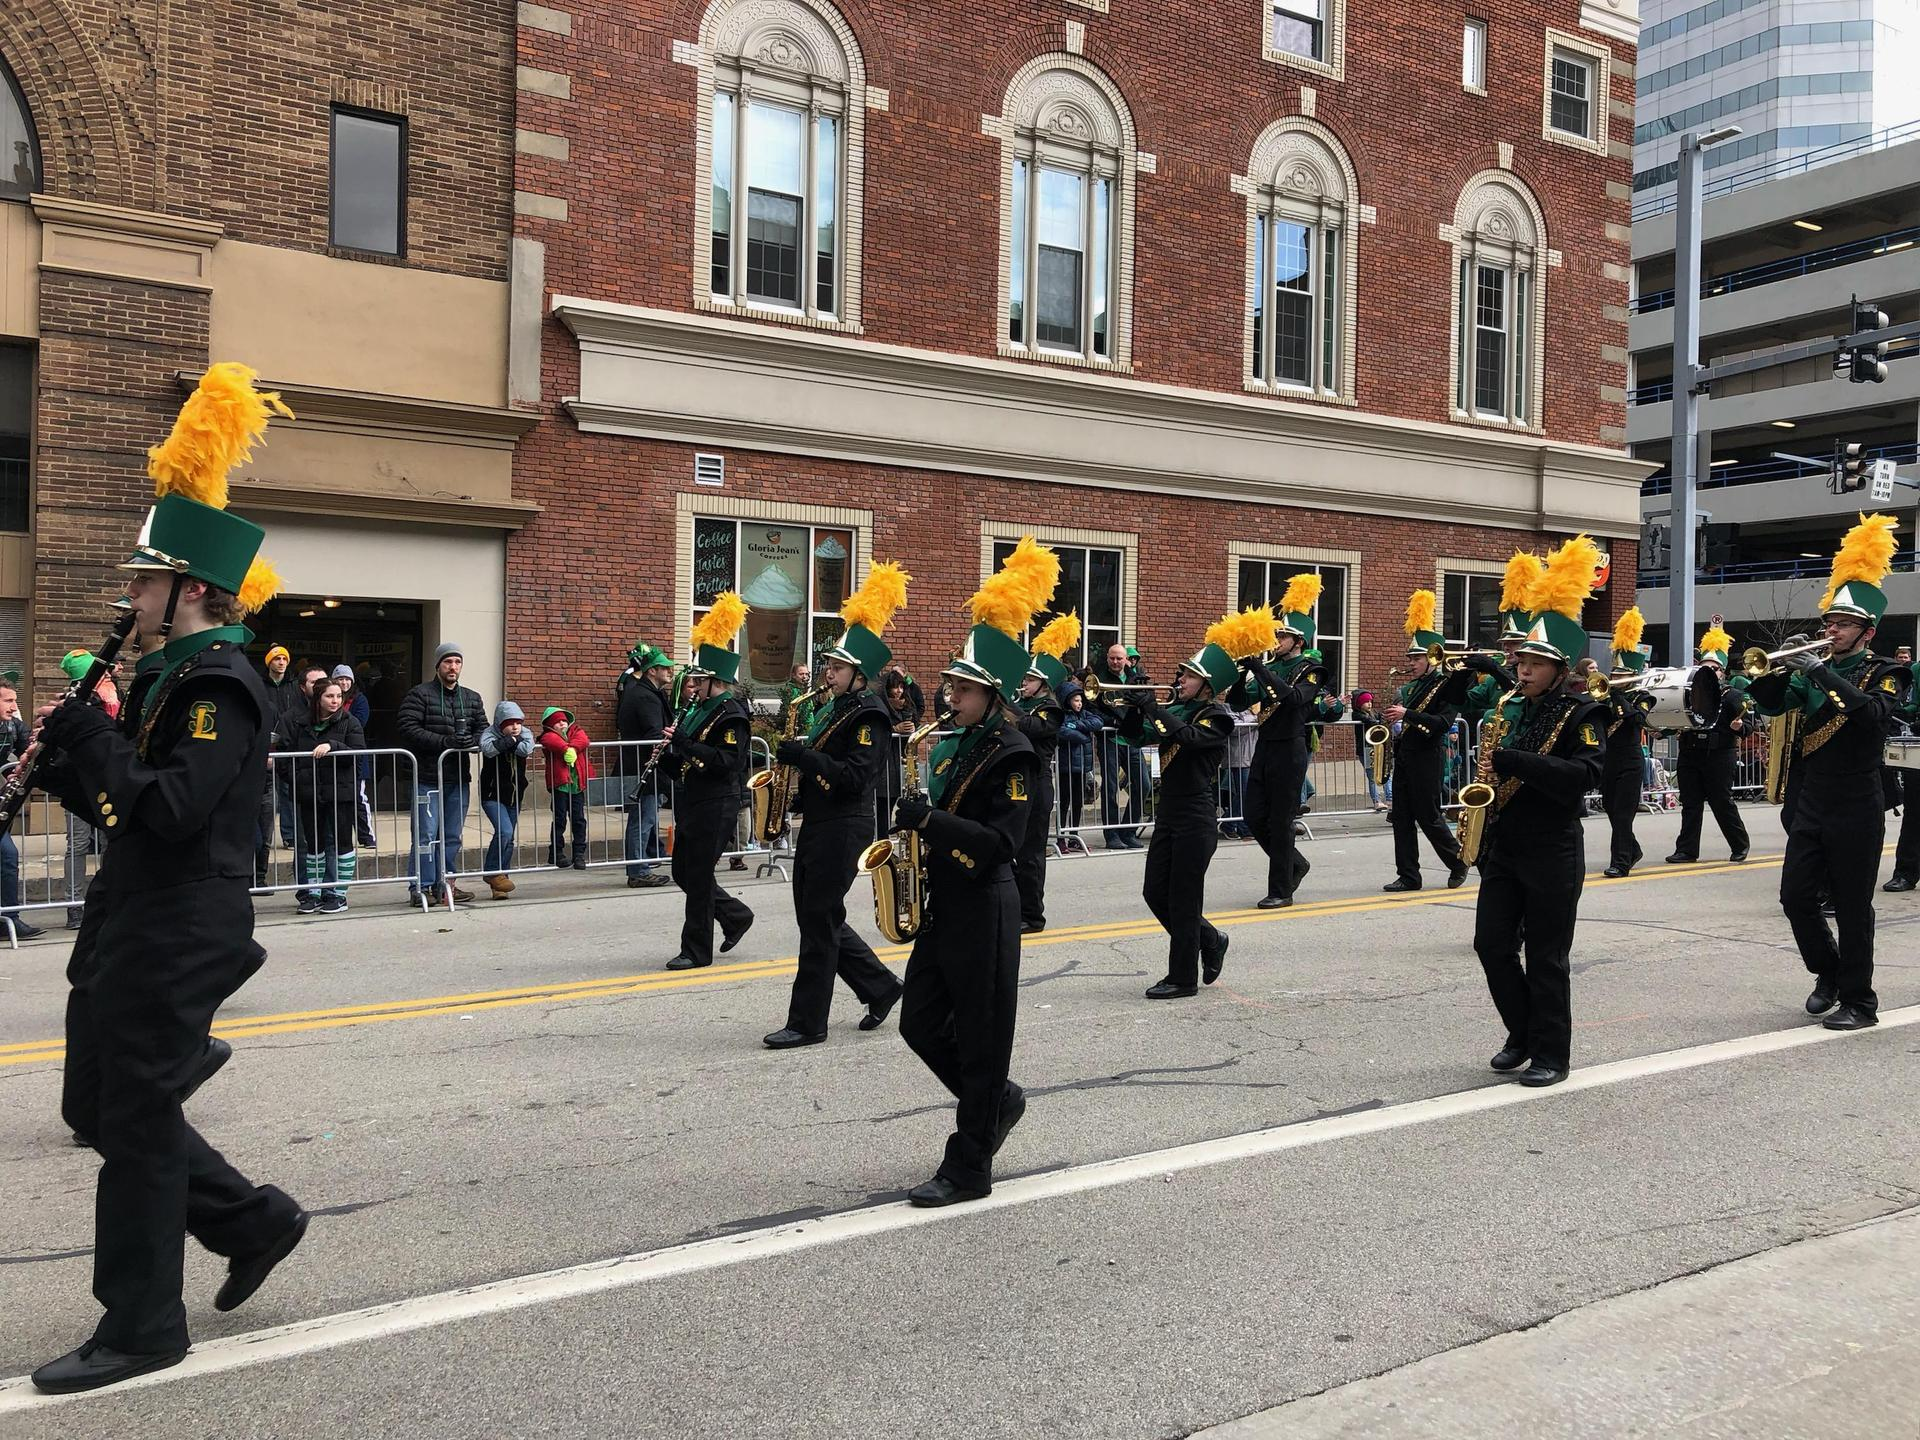 Marching band performs at St. Patrick's Day Parade